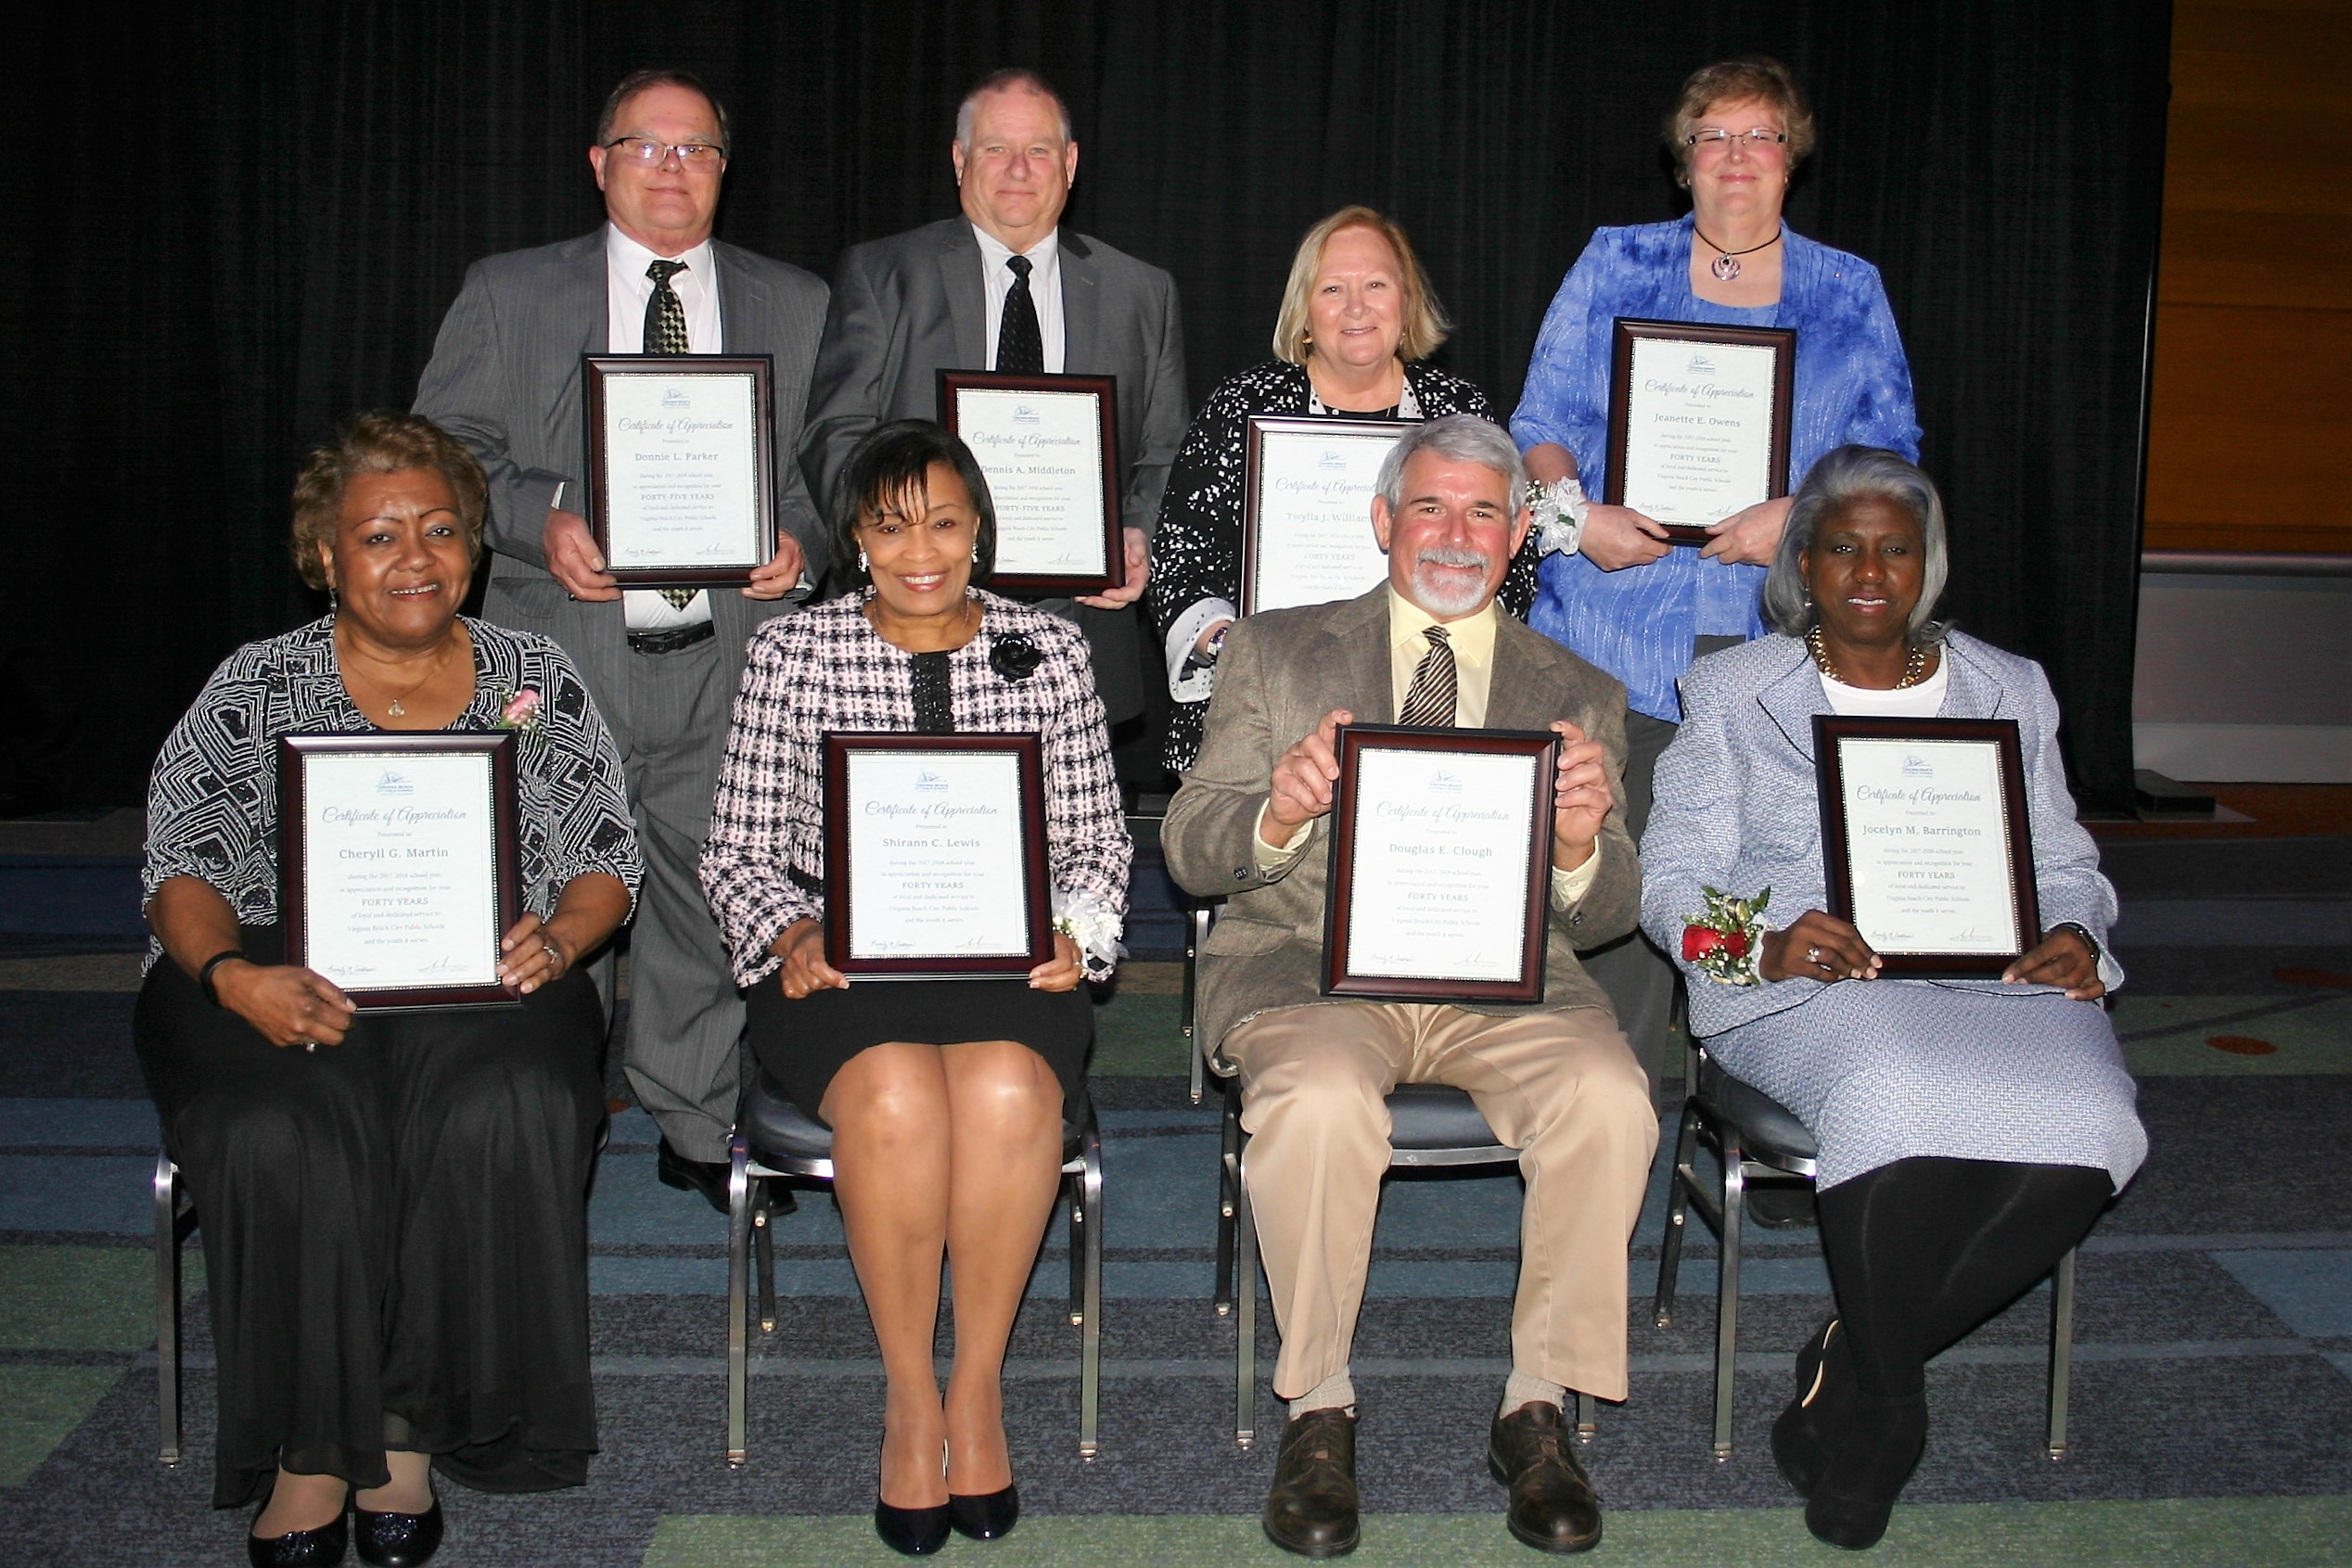 Division celebrates employees' decades of service to VBCPS